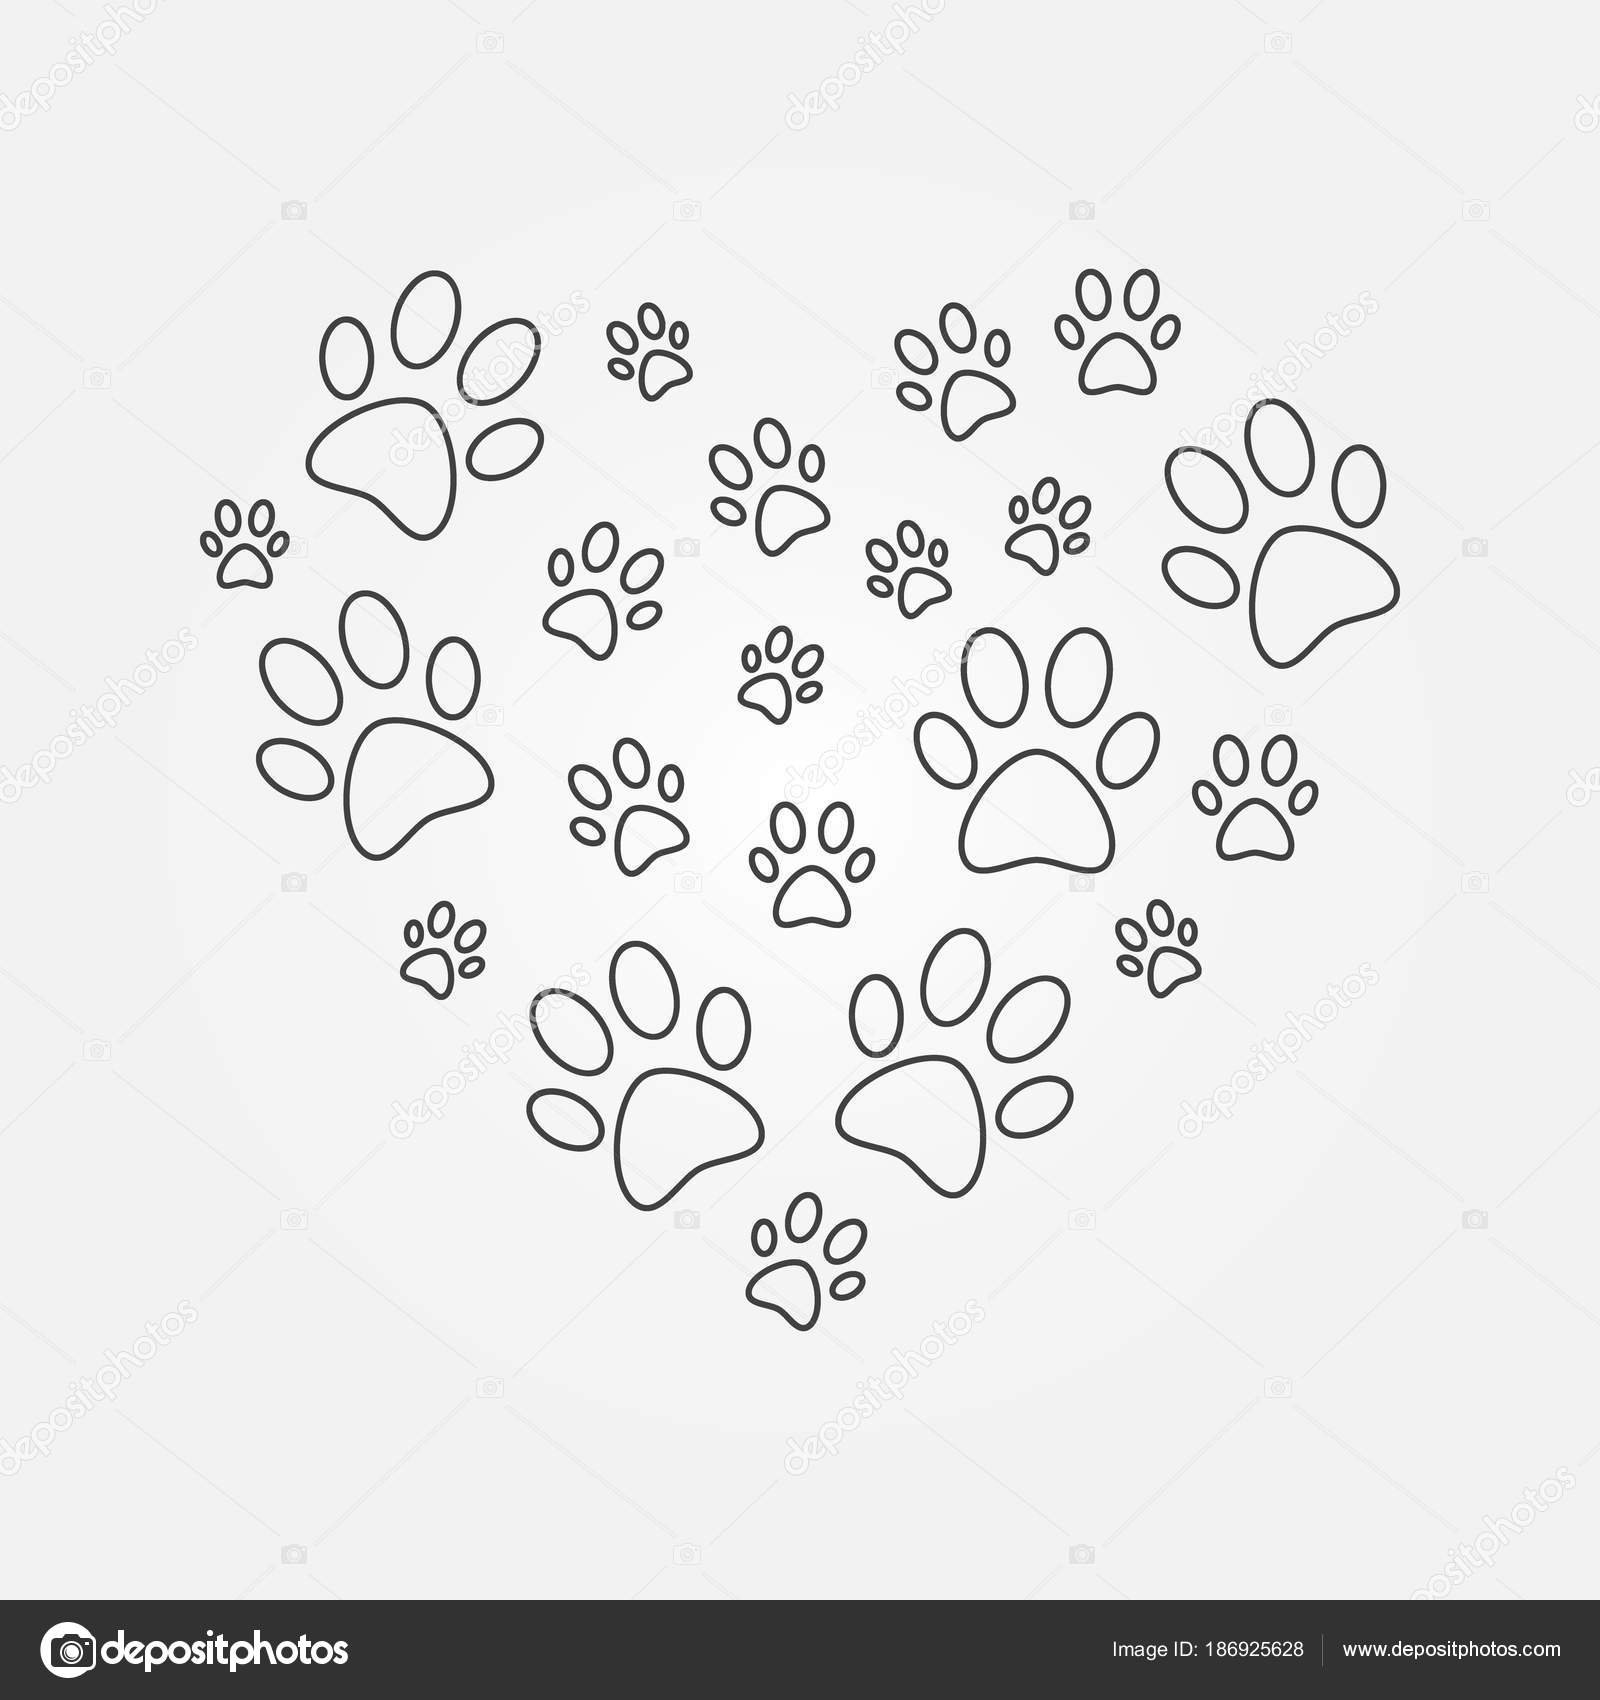 Heart With Dog Paw Prints Outline Vector Illustration Stock Vector